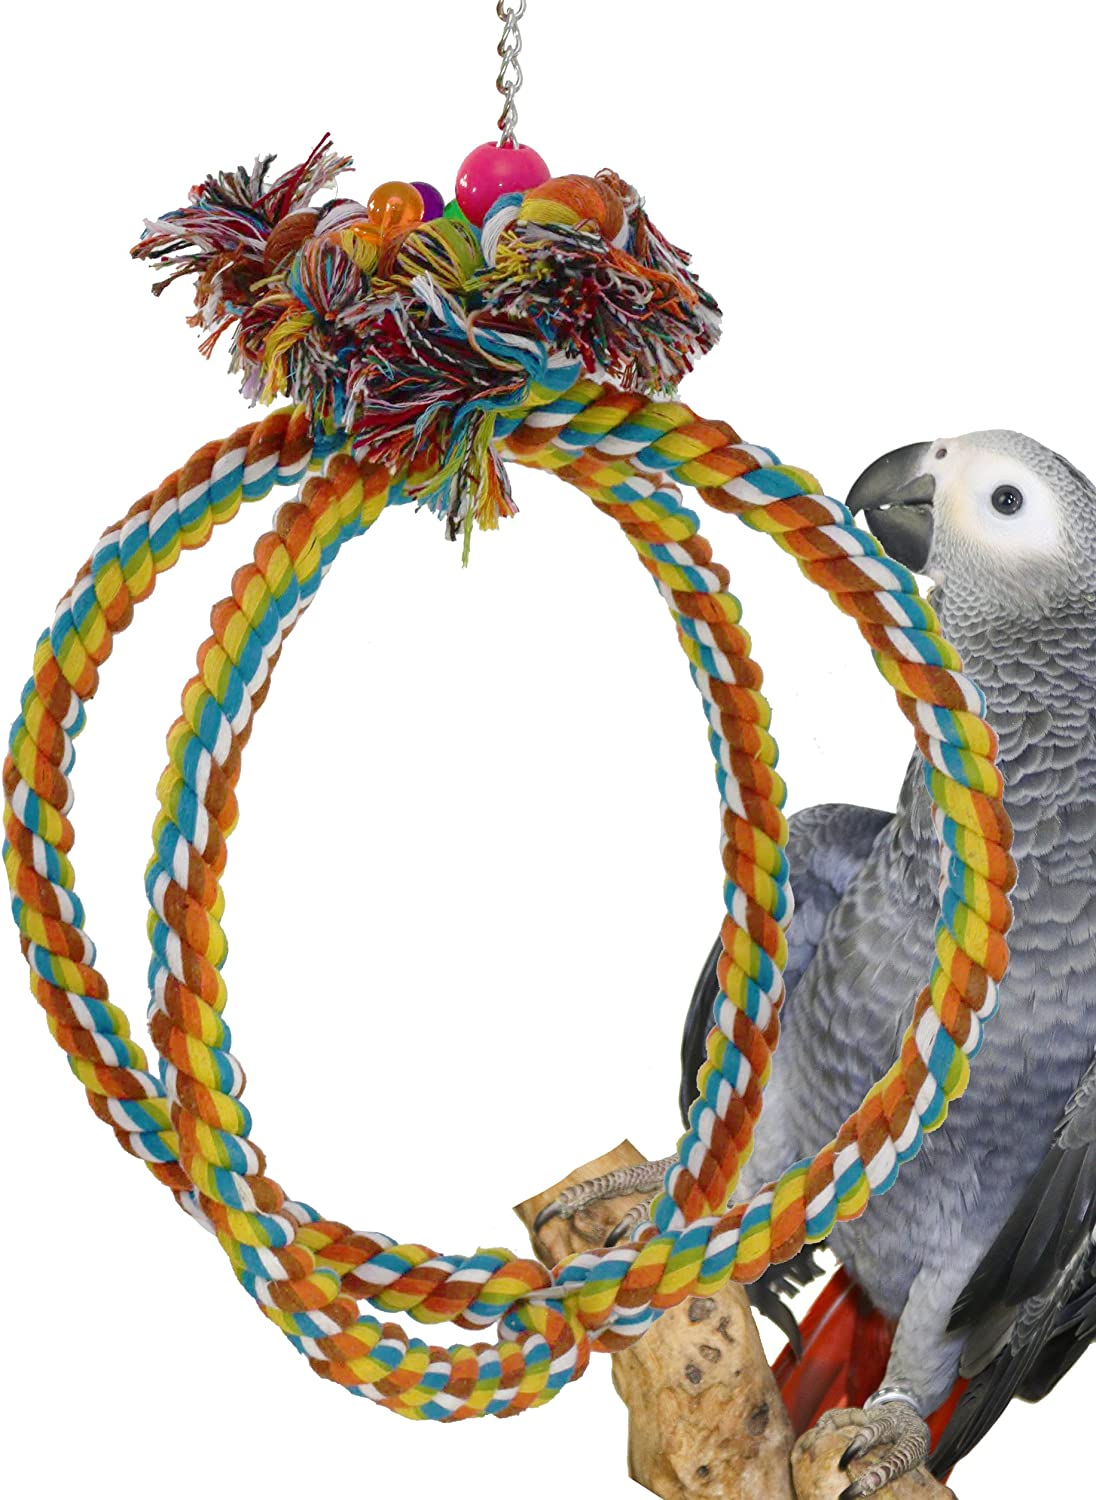 Bonka Bird Toys 1036 Globe Rope Ring Swing Bird Toy parred cage toys cages african grey amazon